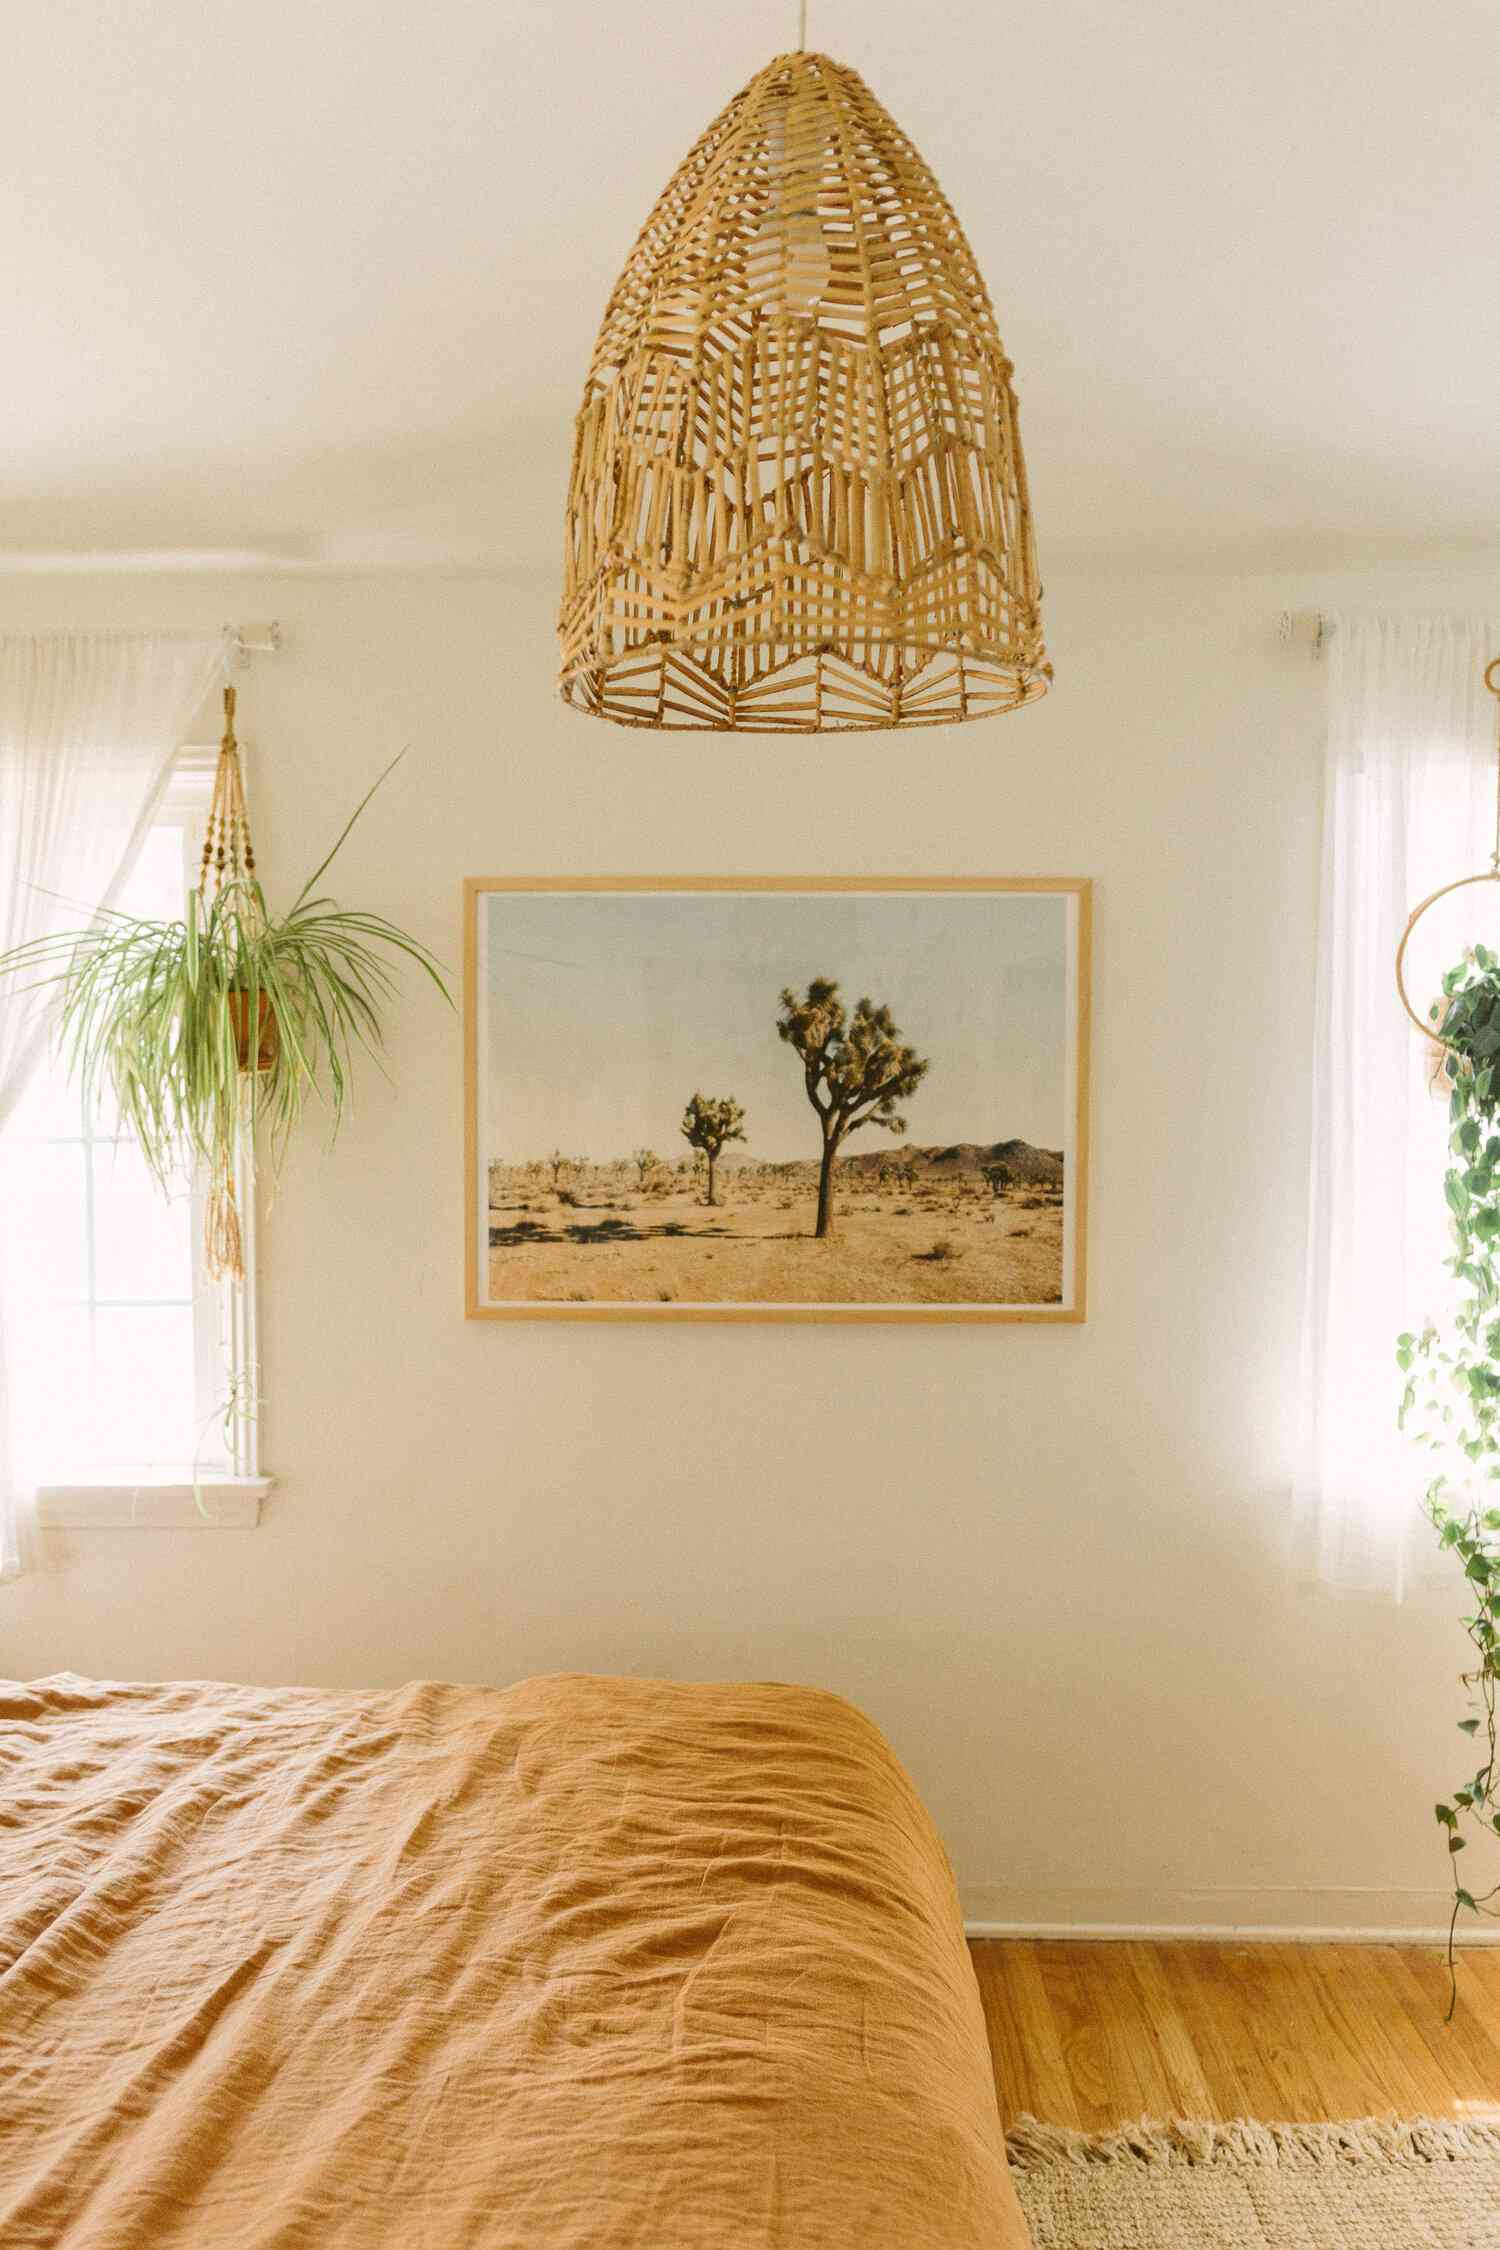 Spider plant hanging in a bright boho bedroom window